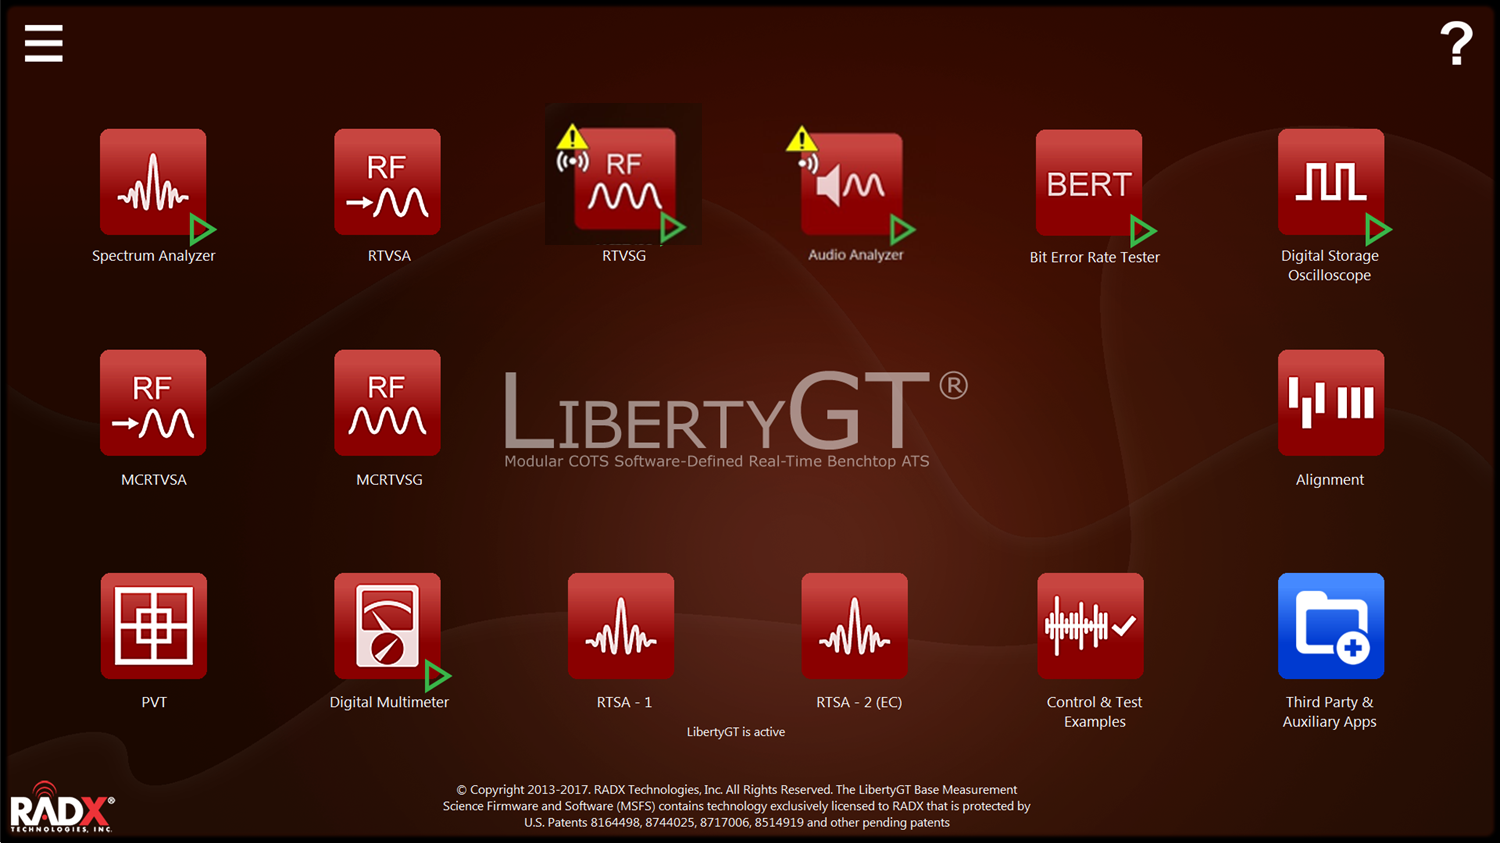 RADX LibertyGT MSFS Homescreen Showing Multiple Apps